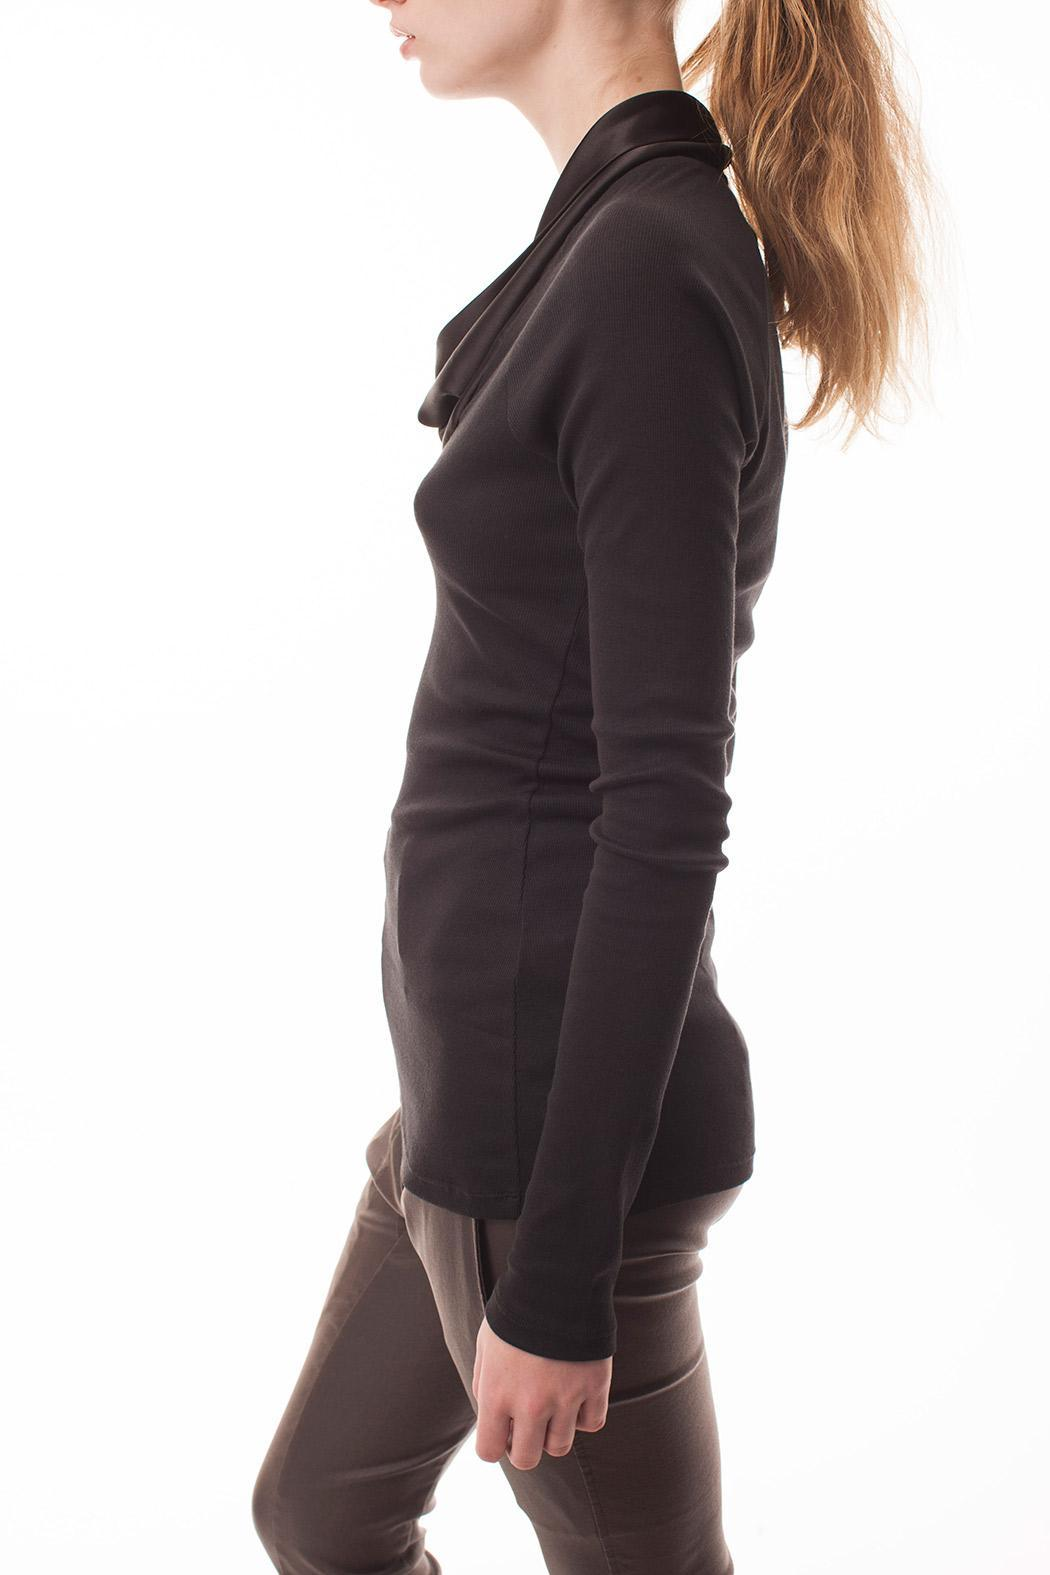 coragroppo Remera Cowl Sweater - Side Cropped Image